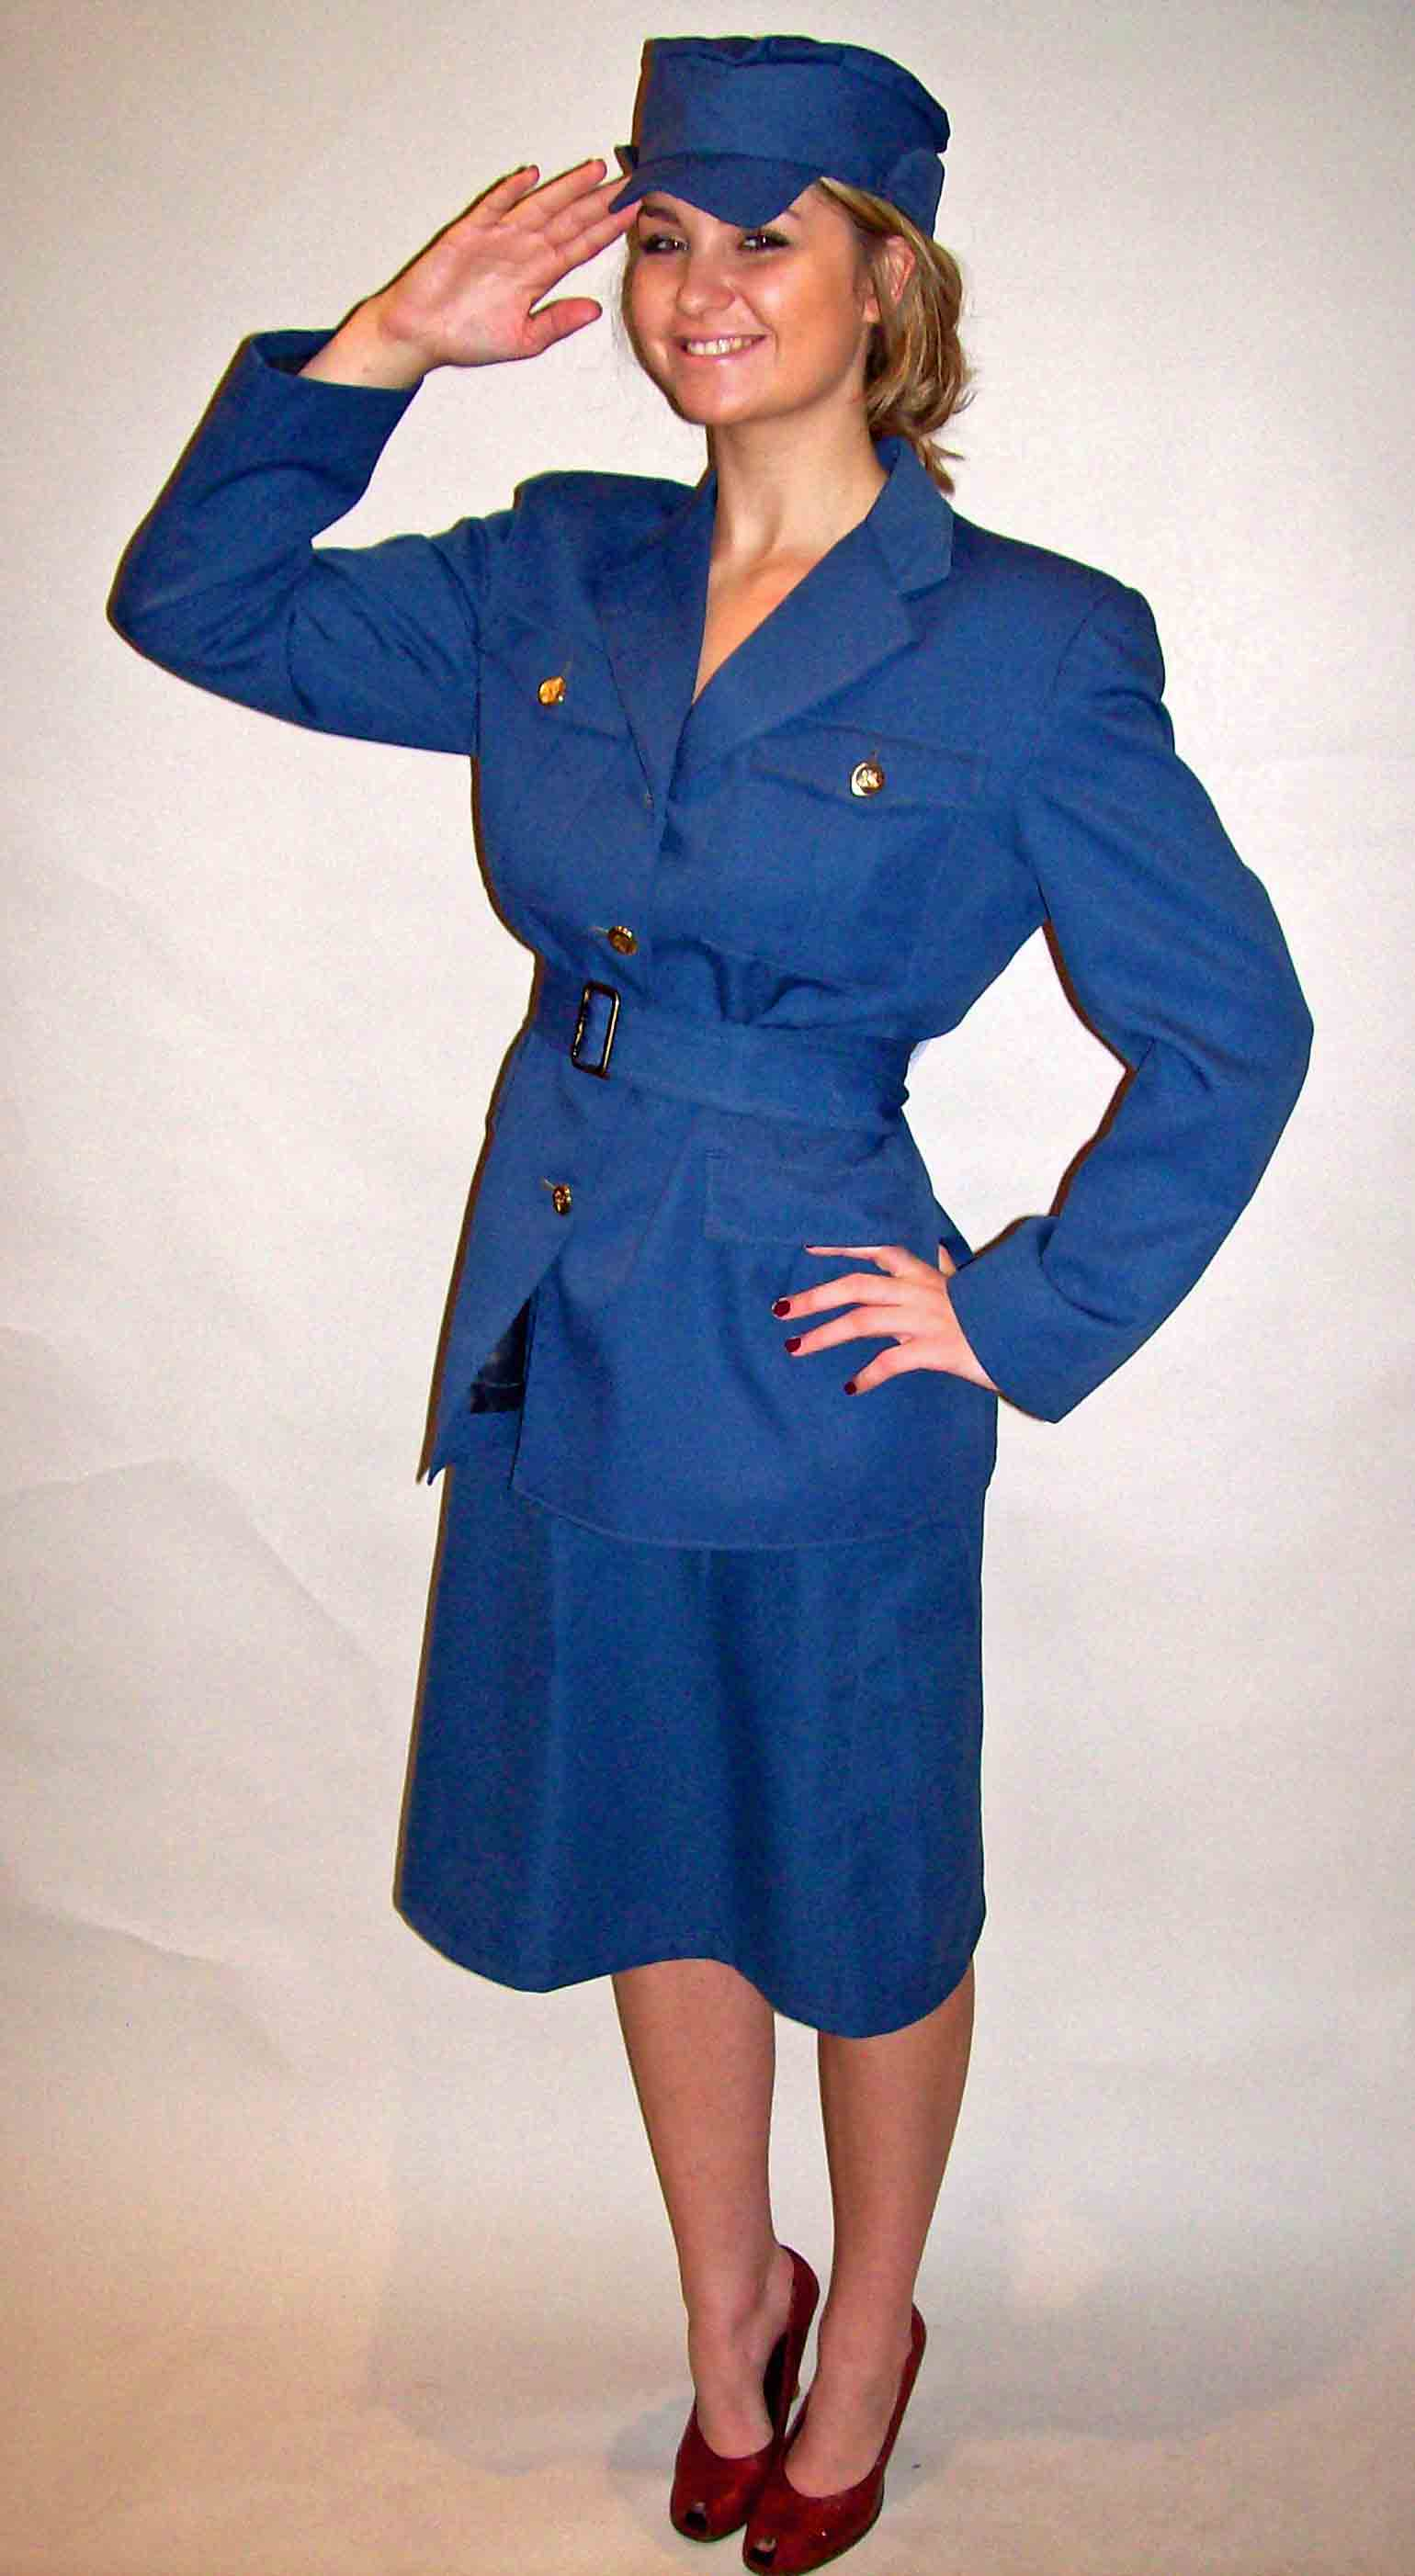 WAAF world war 2 uniform